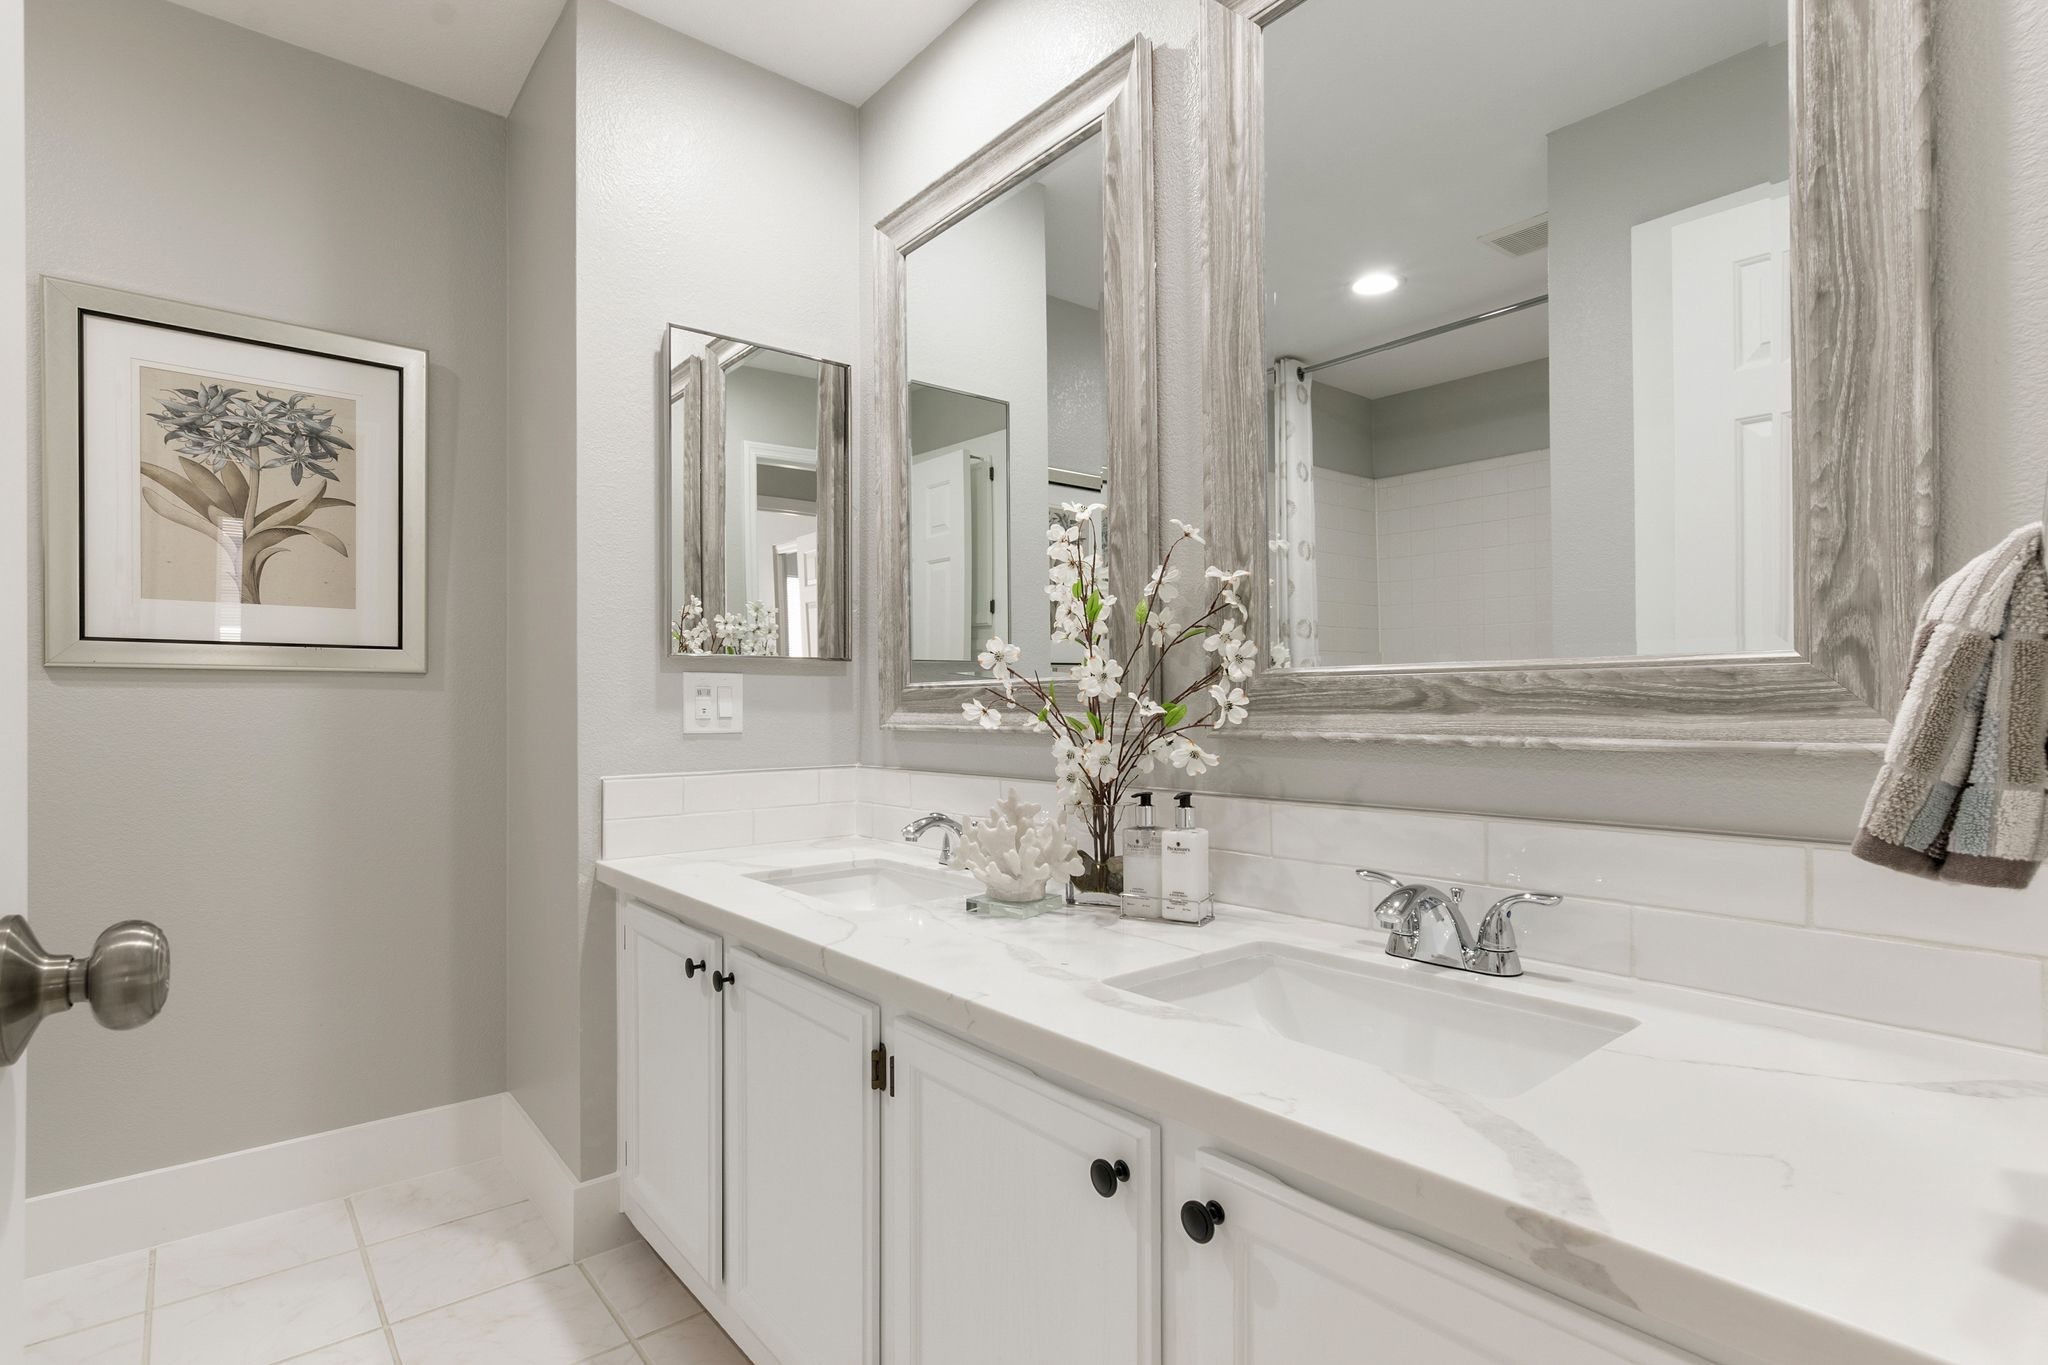 If you have been reviewing bathroom remodel contractors in ...